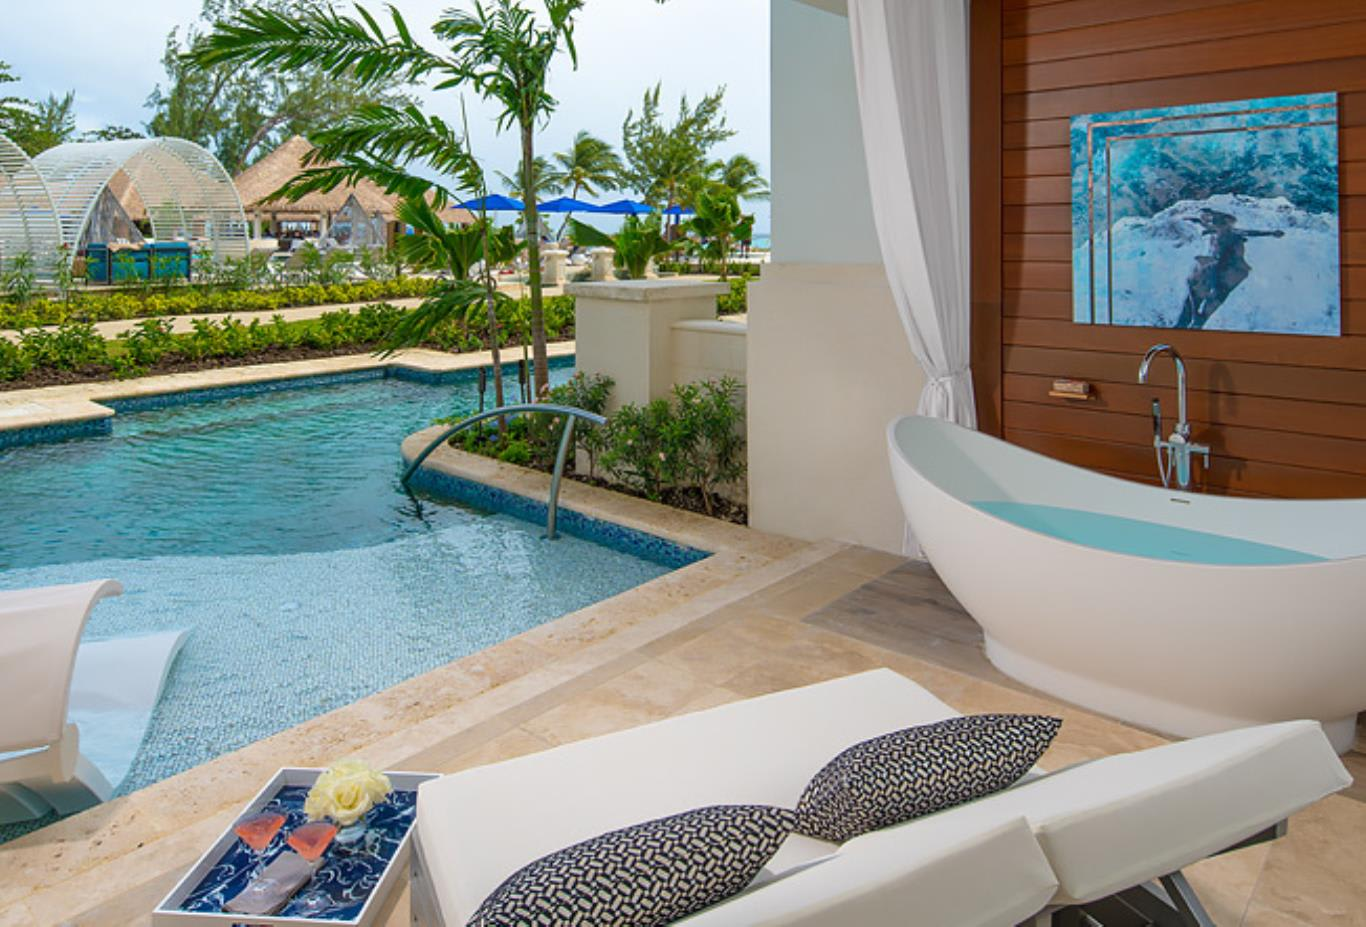 1SUP Royal Seaside Crystal Lagoon Swim Up One Bedroom Butler Suite with Balcony Tranquillity Soaking Tub patio